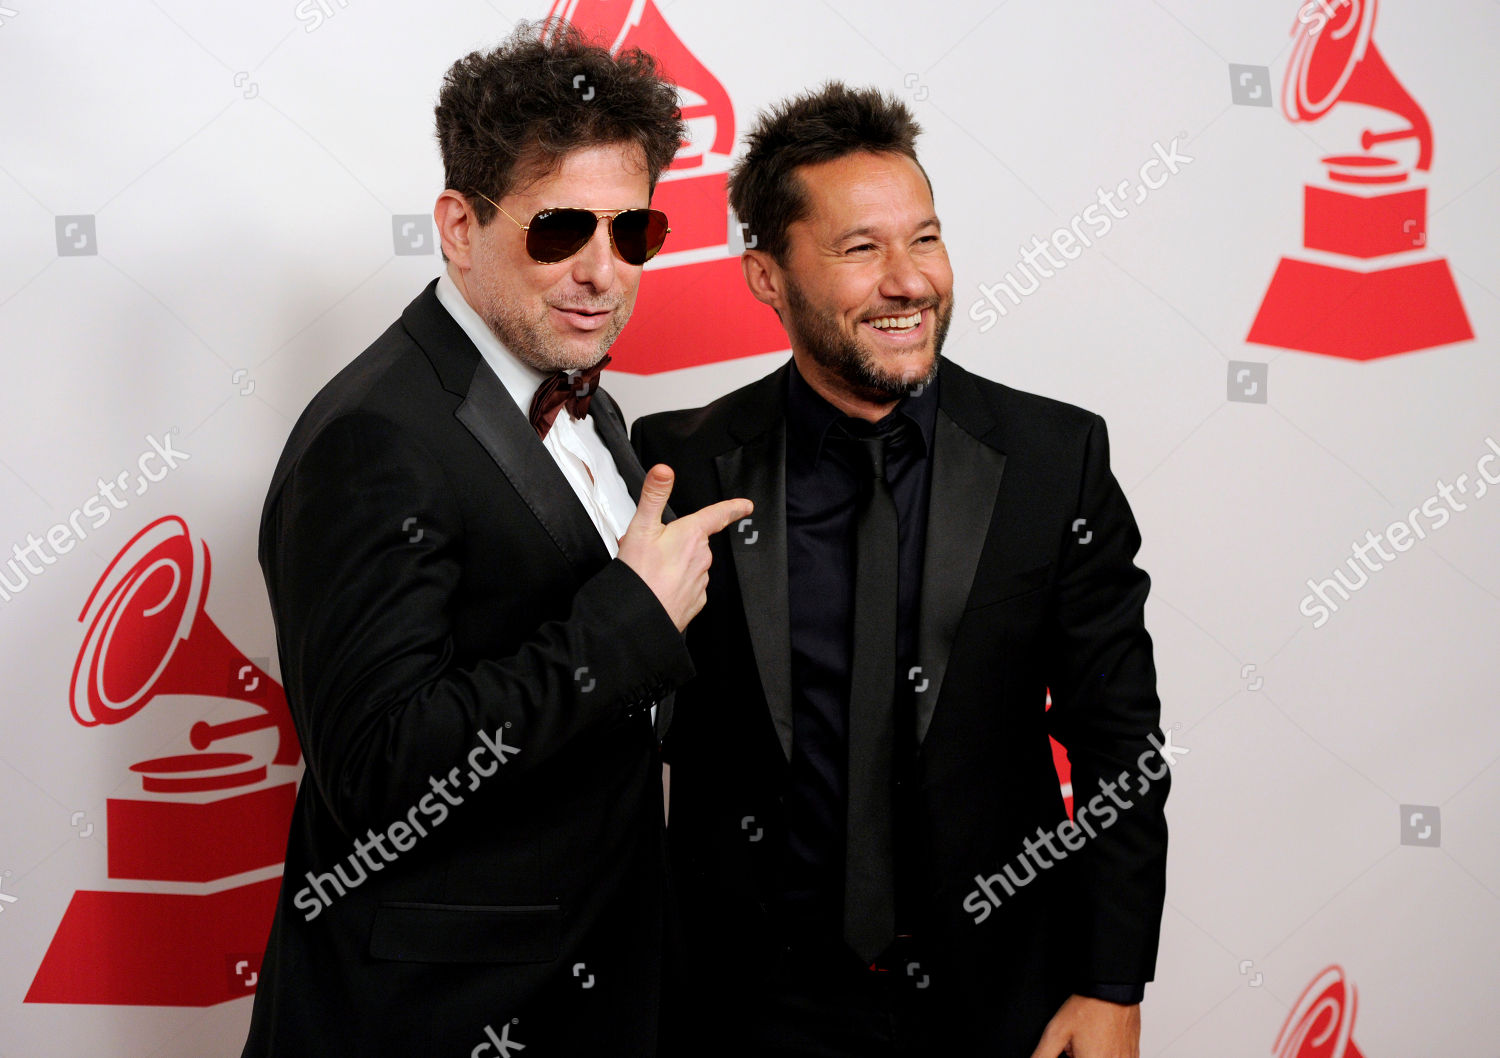 ¿Cuánto mide Diego Torres? - Altura 2014-latin-grammys-person-of-the-year-arrivals-las-vegas-usa-shutterstock-editorial-9191812j